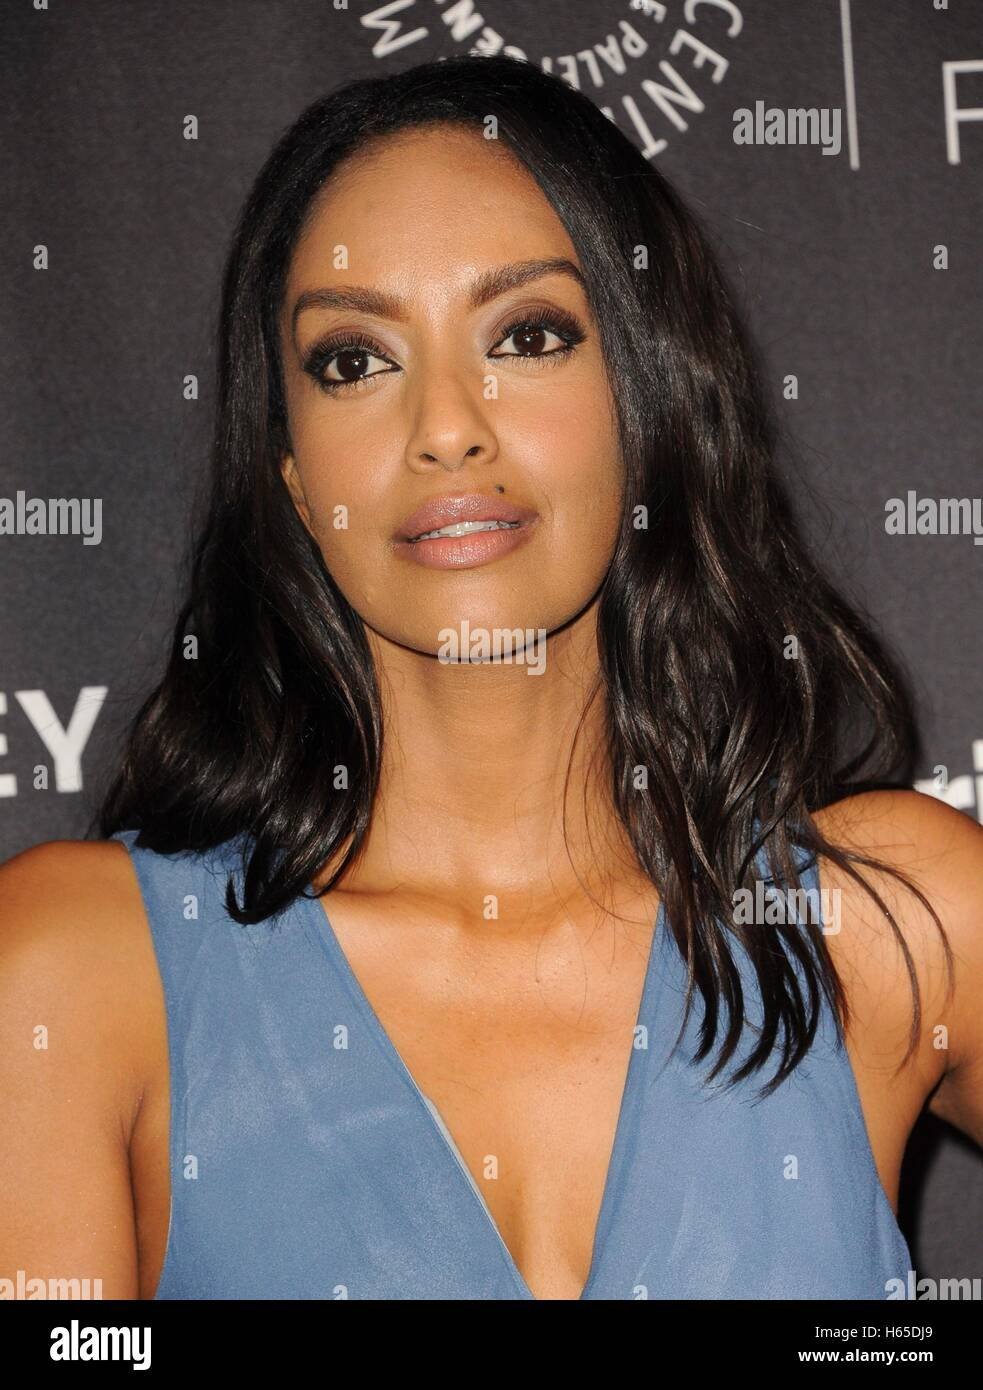 Discussion on this topic: Elliot Tittensor (born 1989), azie-tesfai/